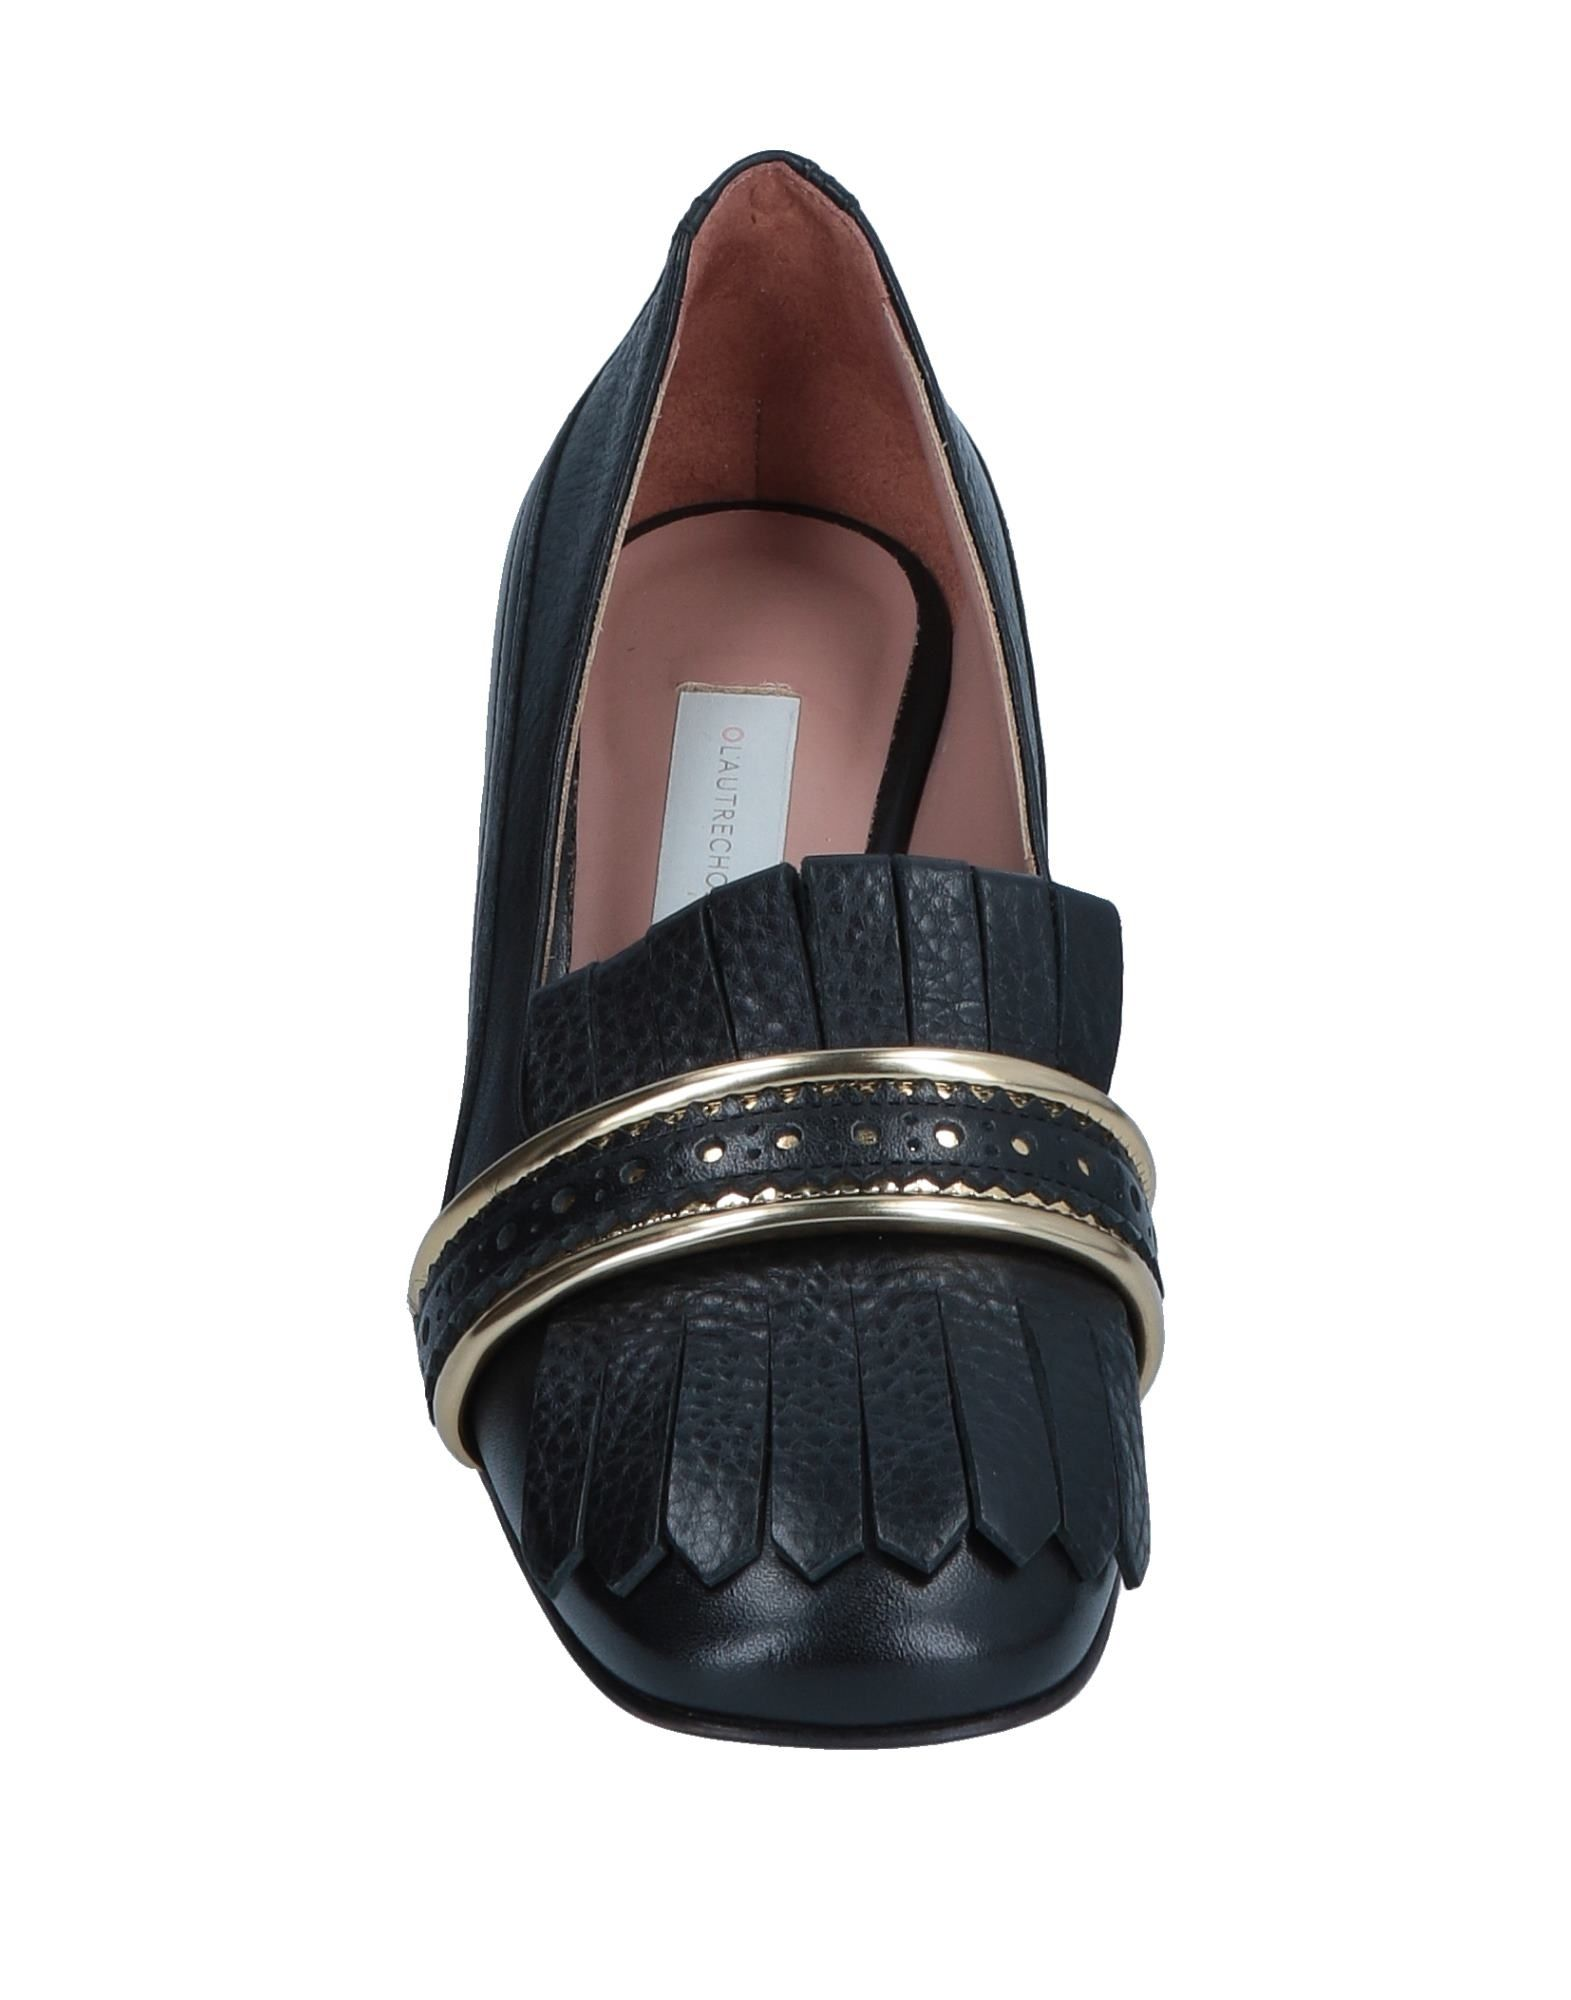 L' Autre Chose Loafers - Women Women Women L' Autre Chose Loafers online on  United Kingdom - 11554016QC 68d7f7